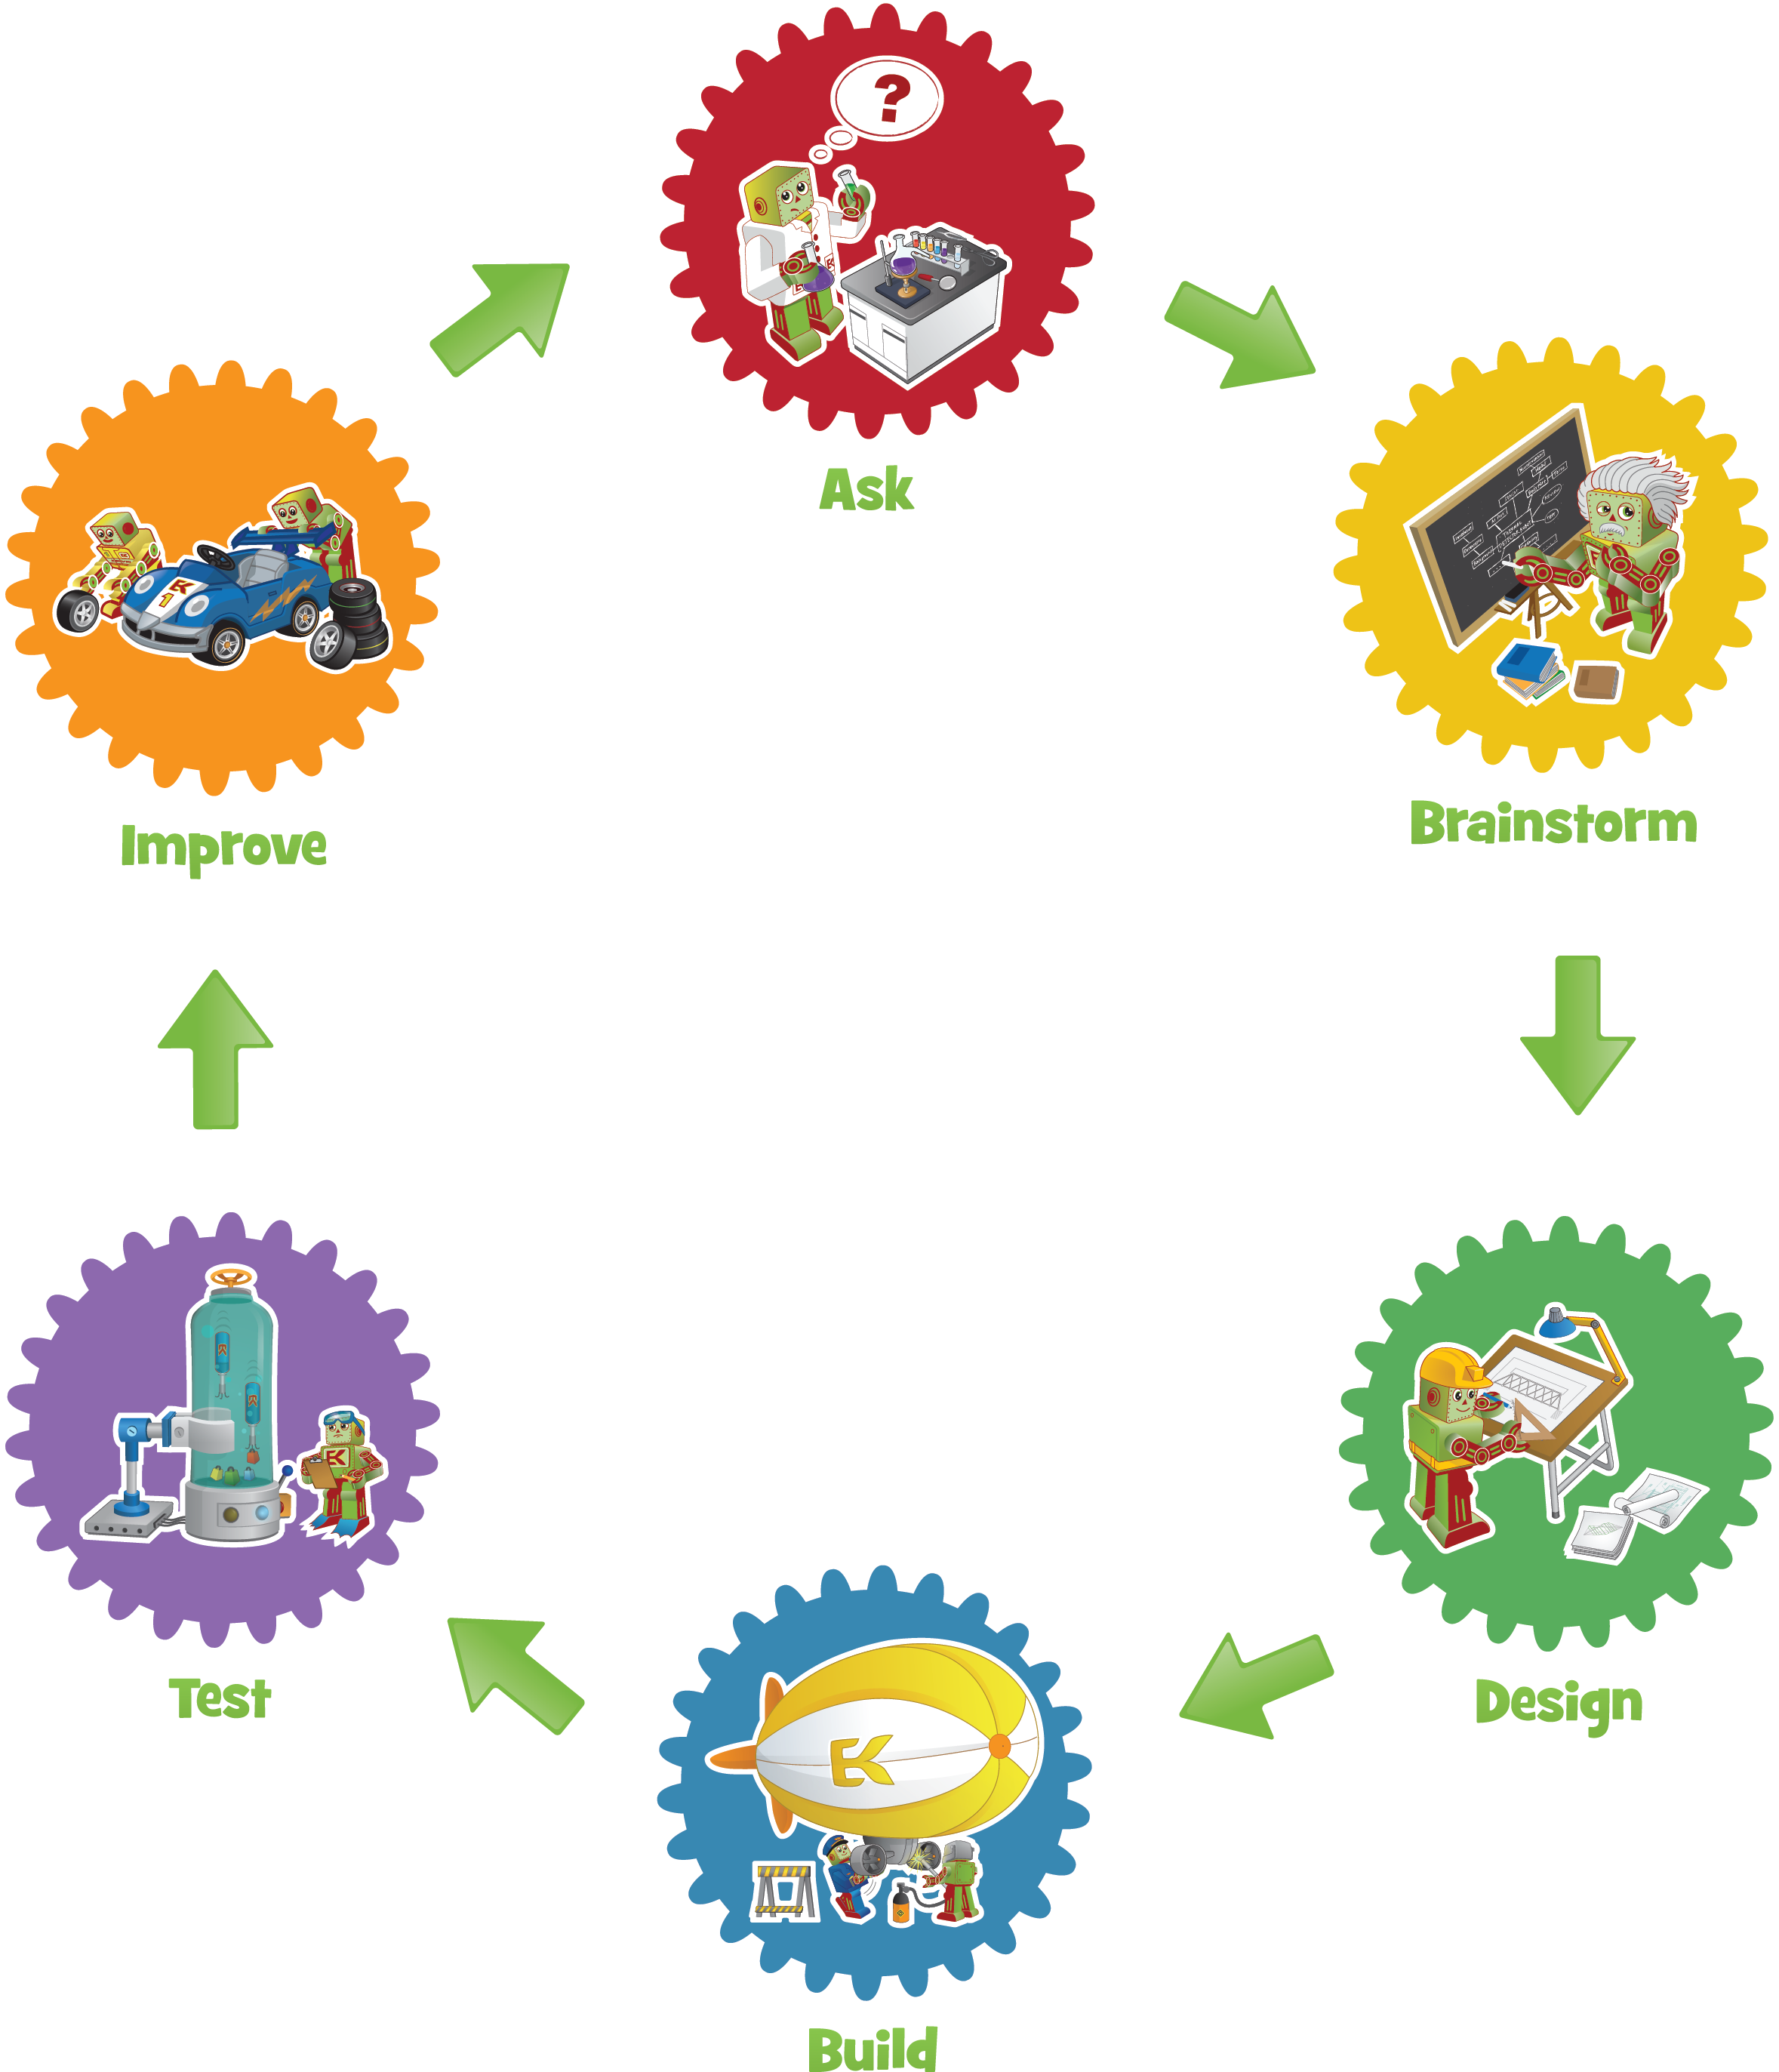 Engineering clipart engineering process.  collection of kids